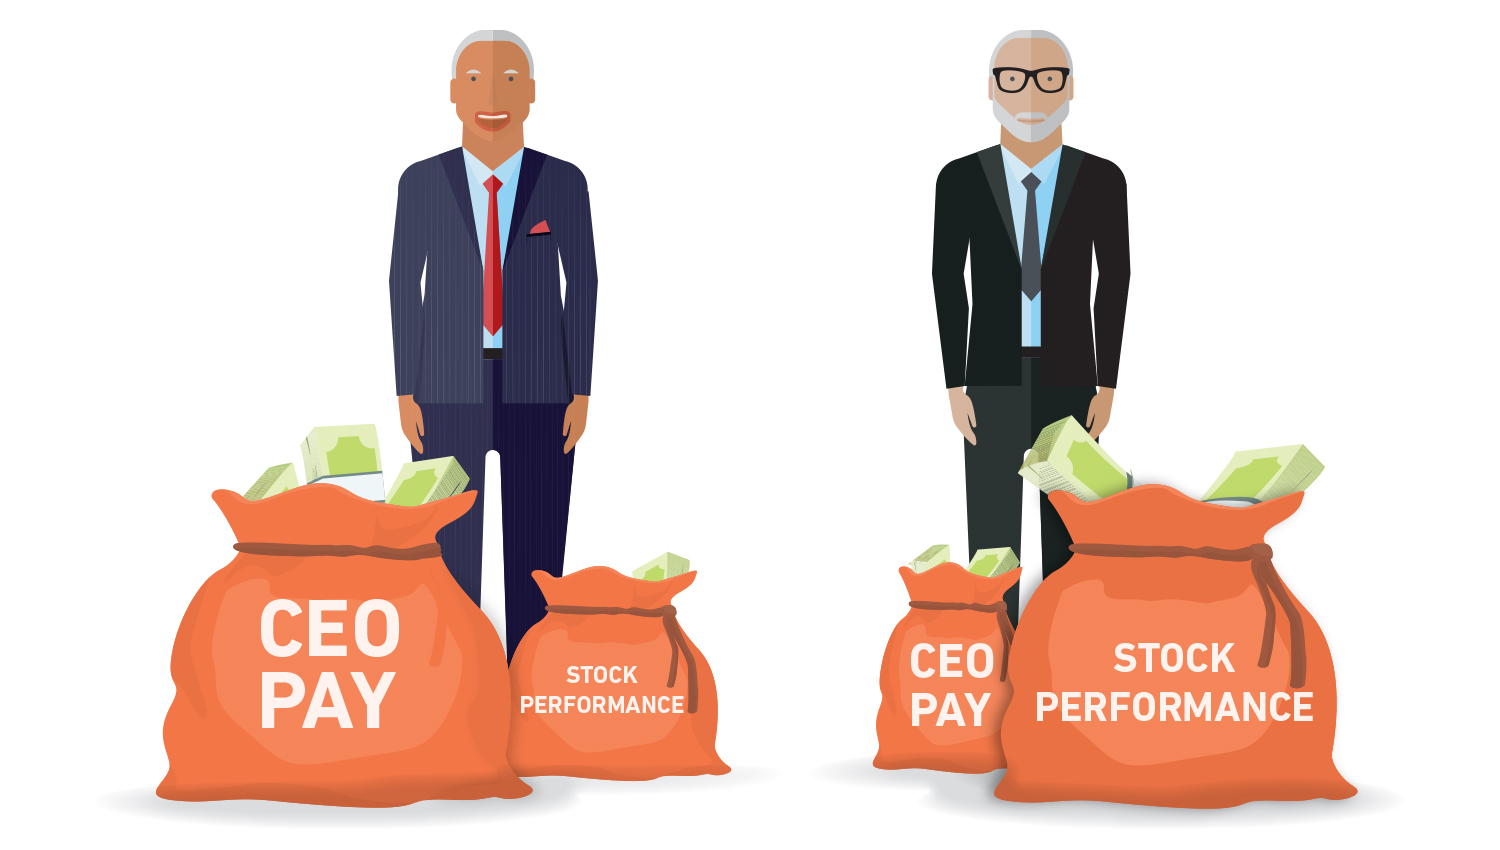 Research paper on ceo pay